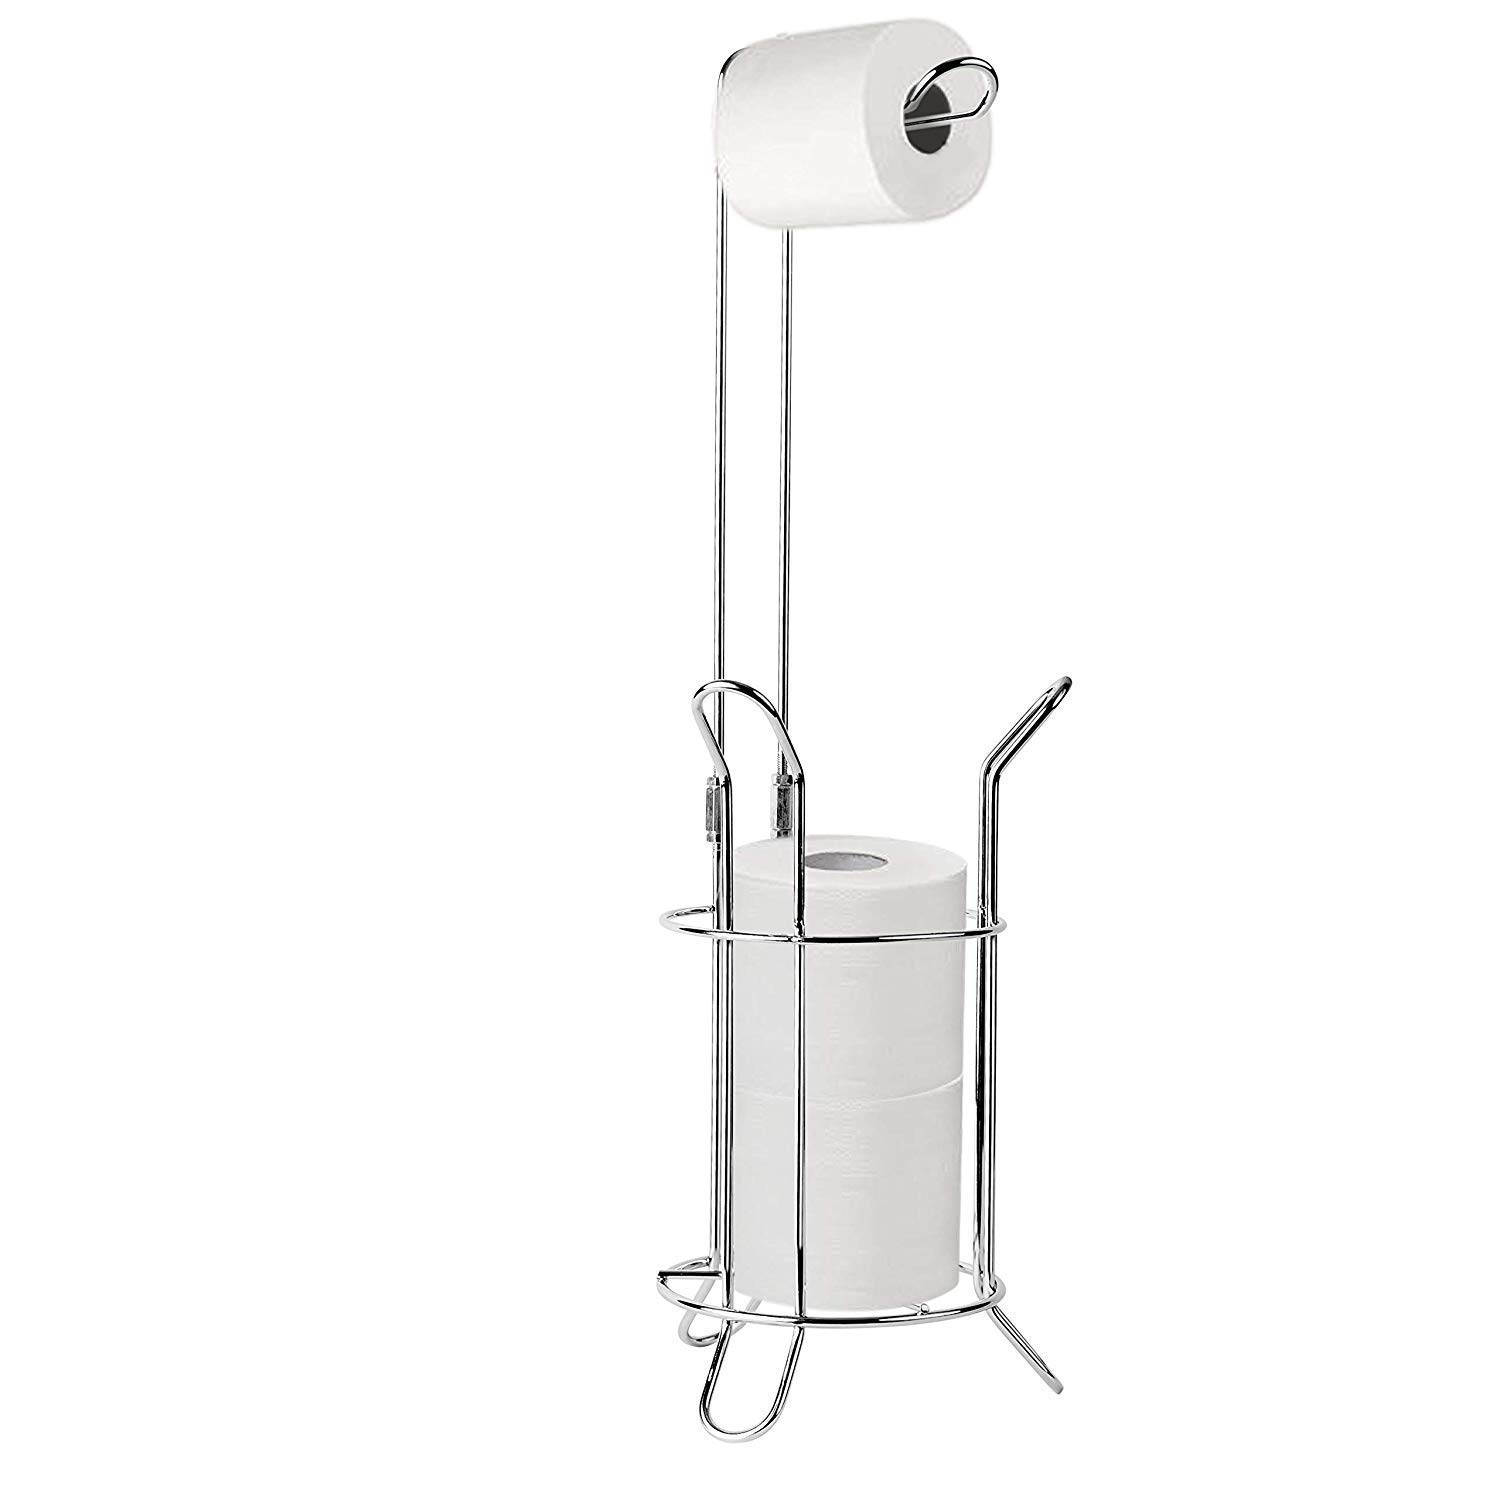 Toilet Paper Holder - Strongest Heaviest Bathroom Our shop OFFers the best service Tissue Pa 5 ☆ very popular Duty